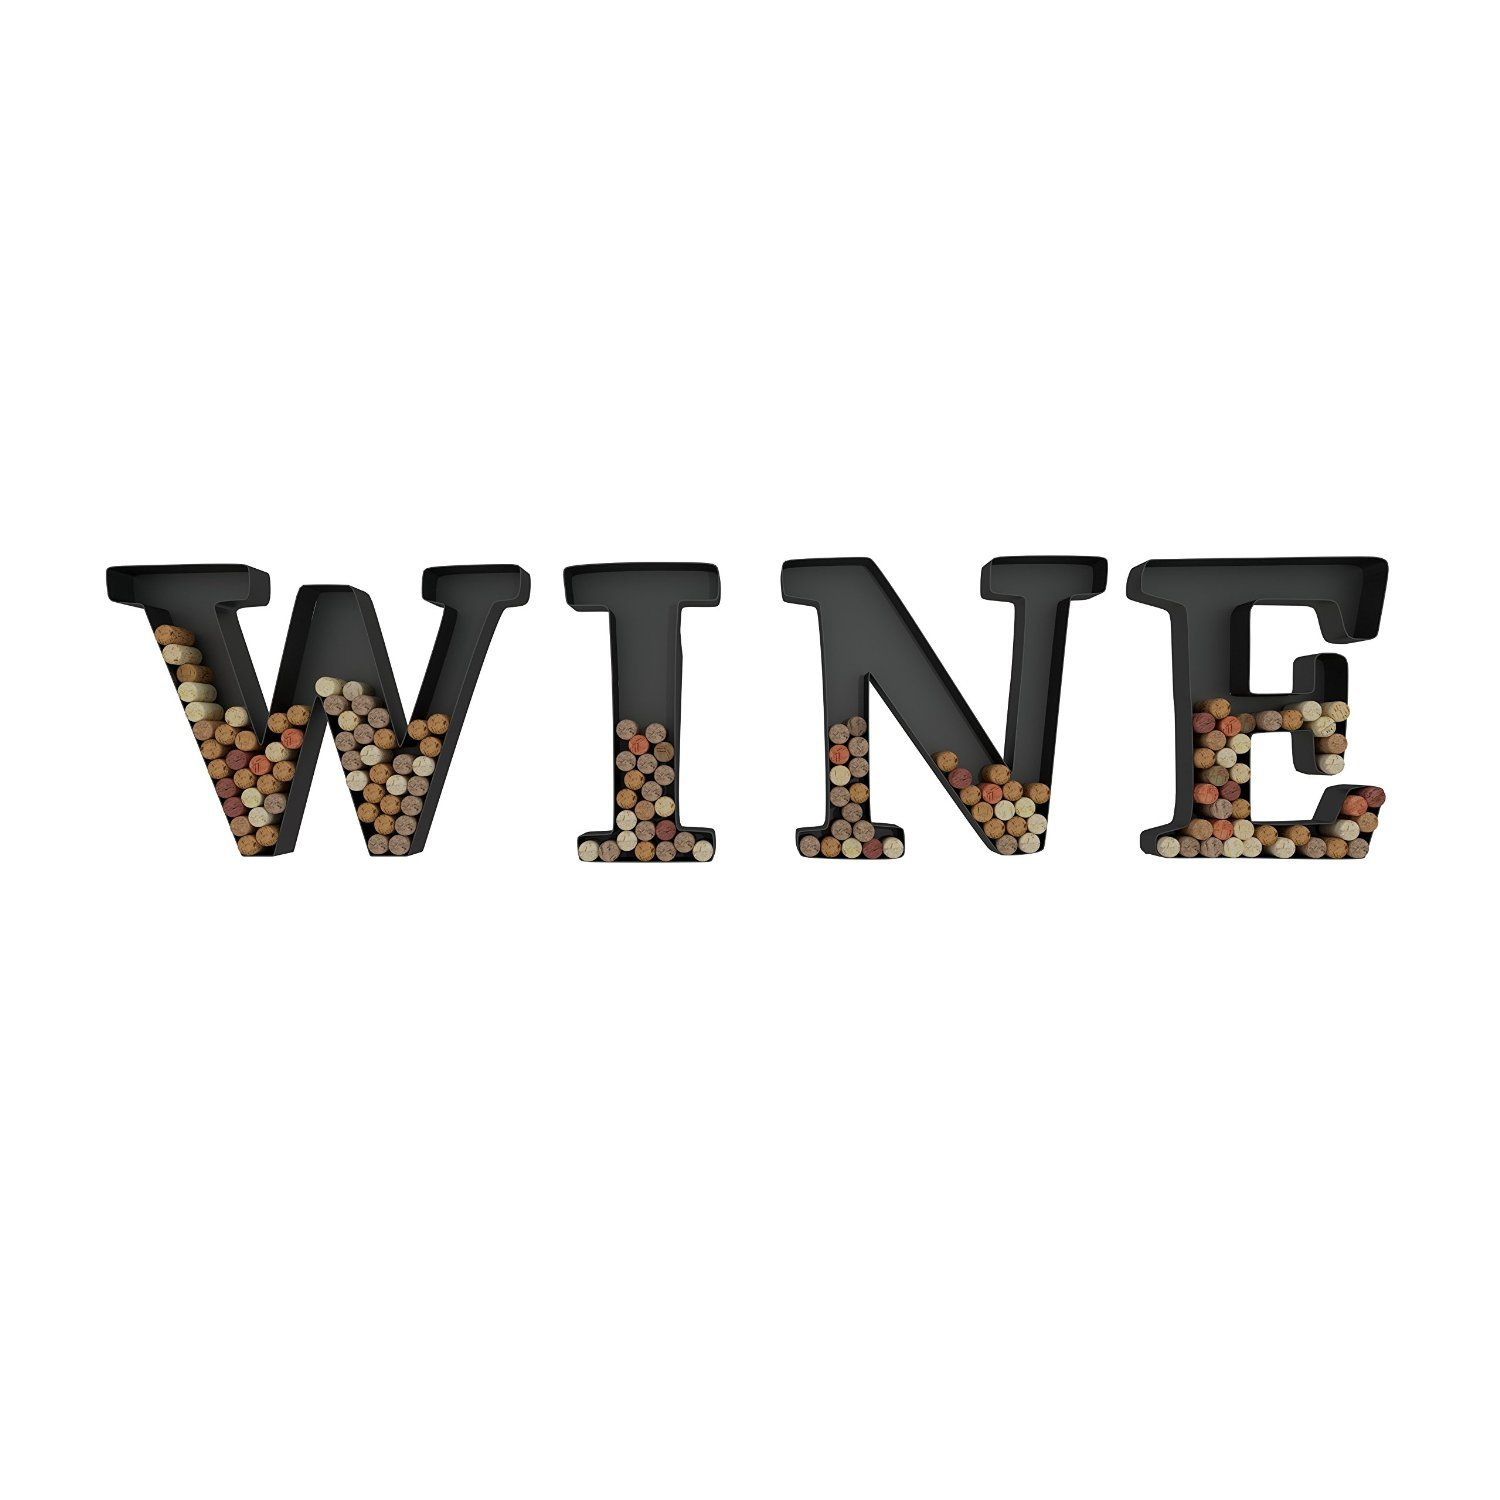 Amazon wine letter cork holder art wall dcor metal all 4 amazon wine letter cork holder art wall dcor metal all 4 letters w i n e gifts for wine lovers includes sample silicone wine glass charm by amipublicfo Images